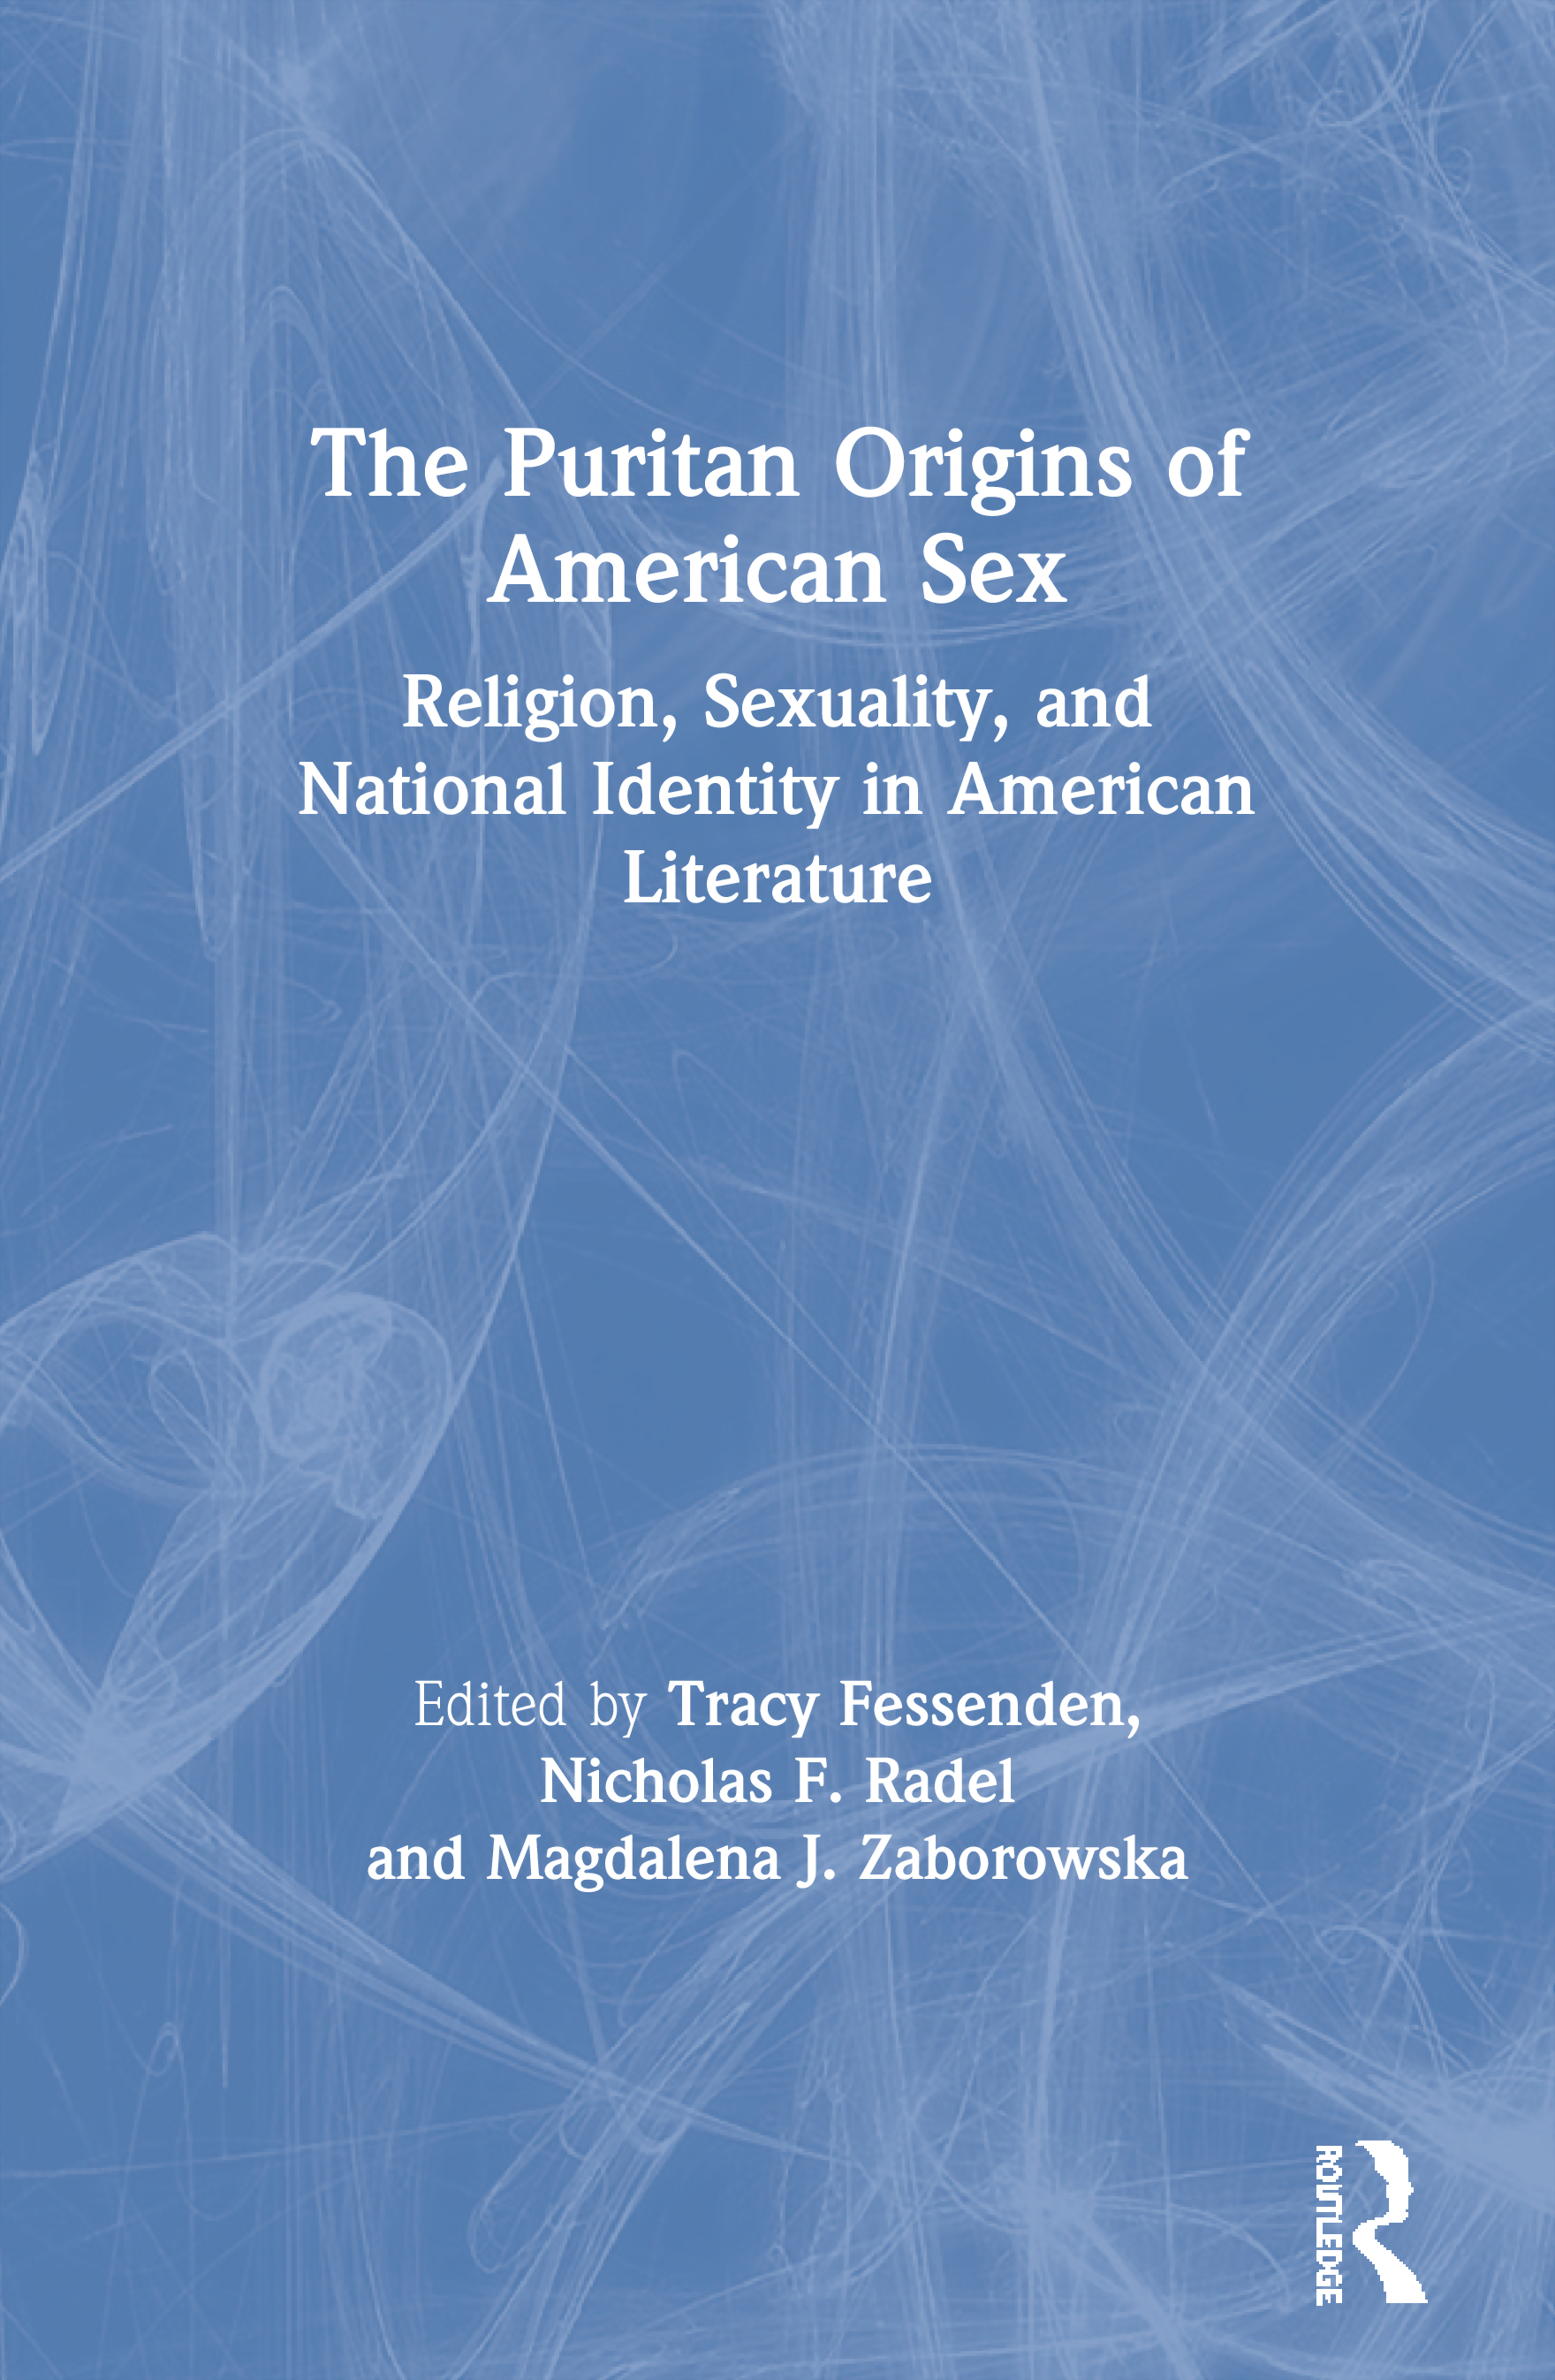 The Puritan Origins of American Sex